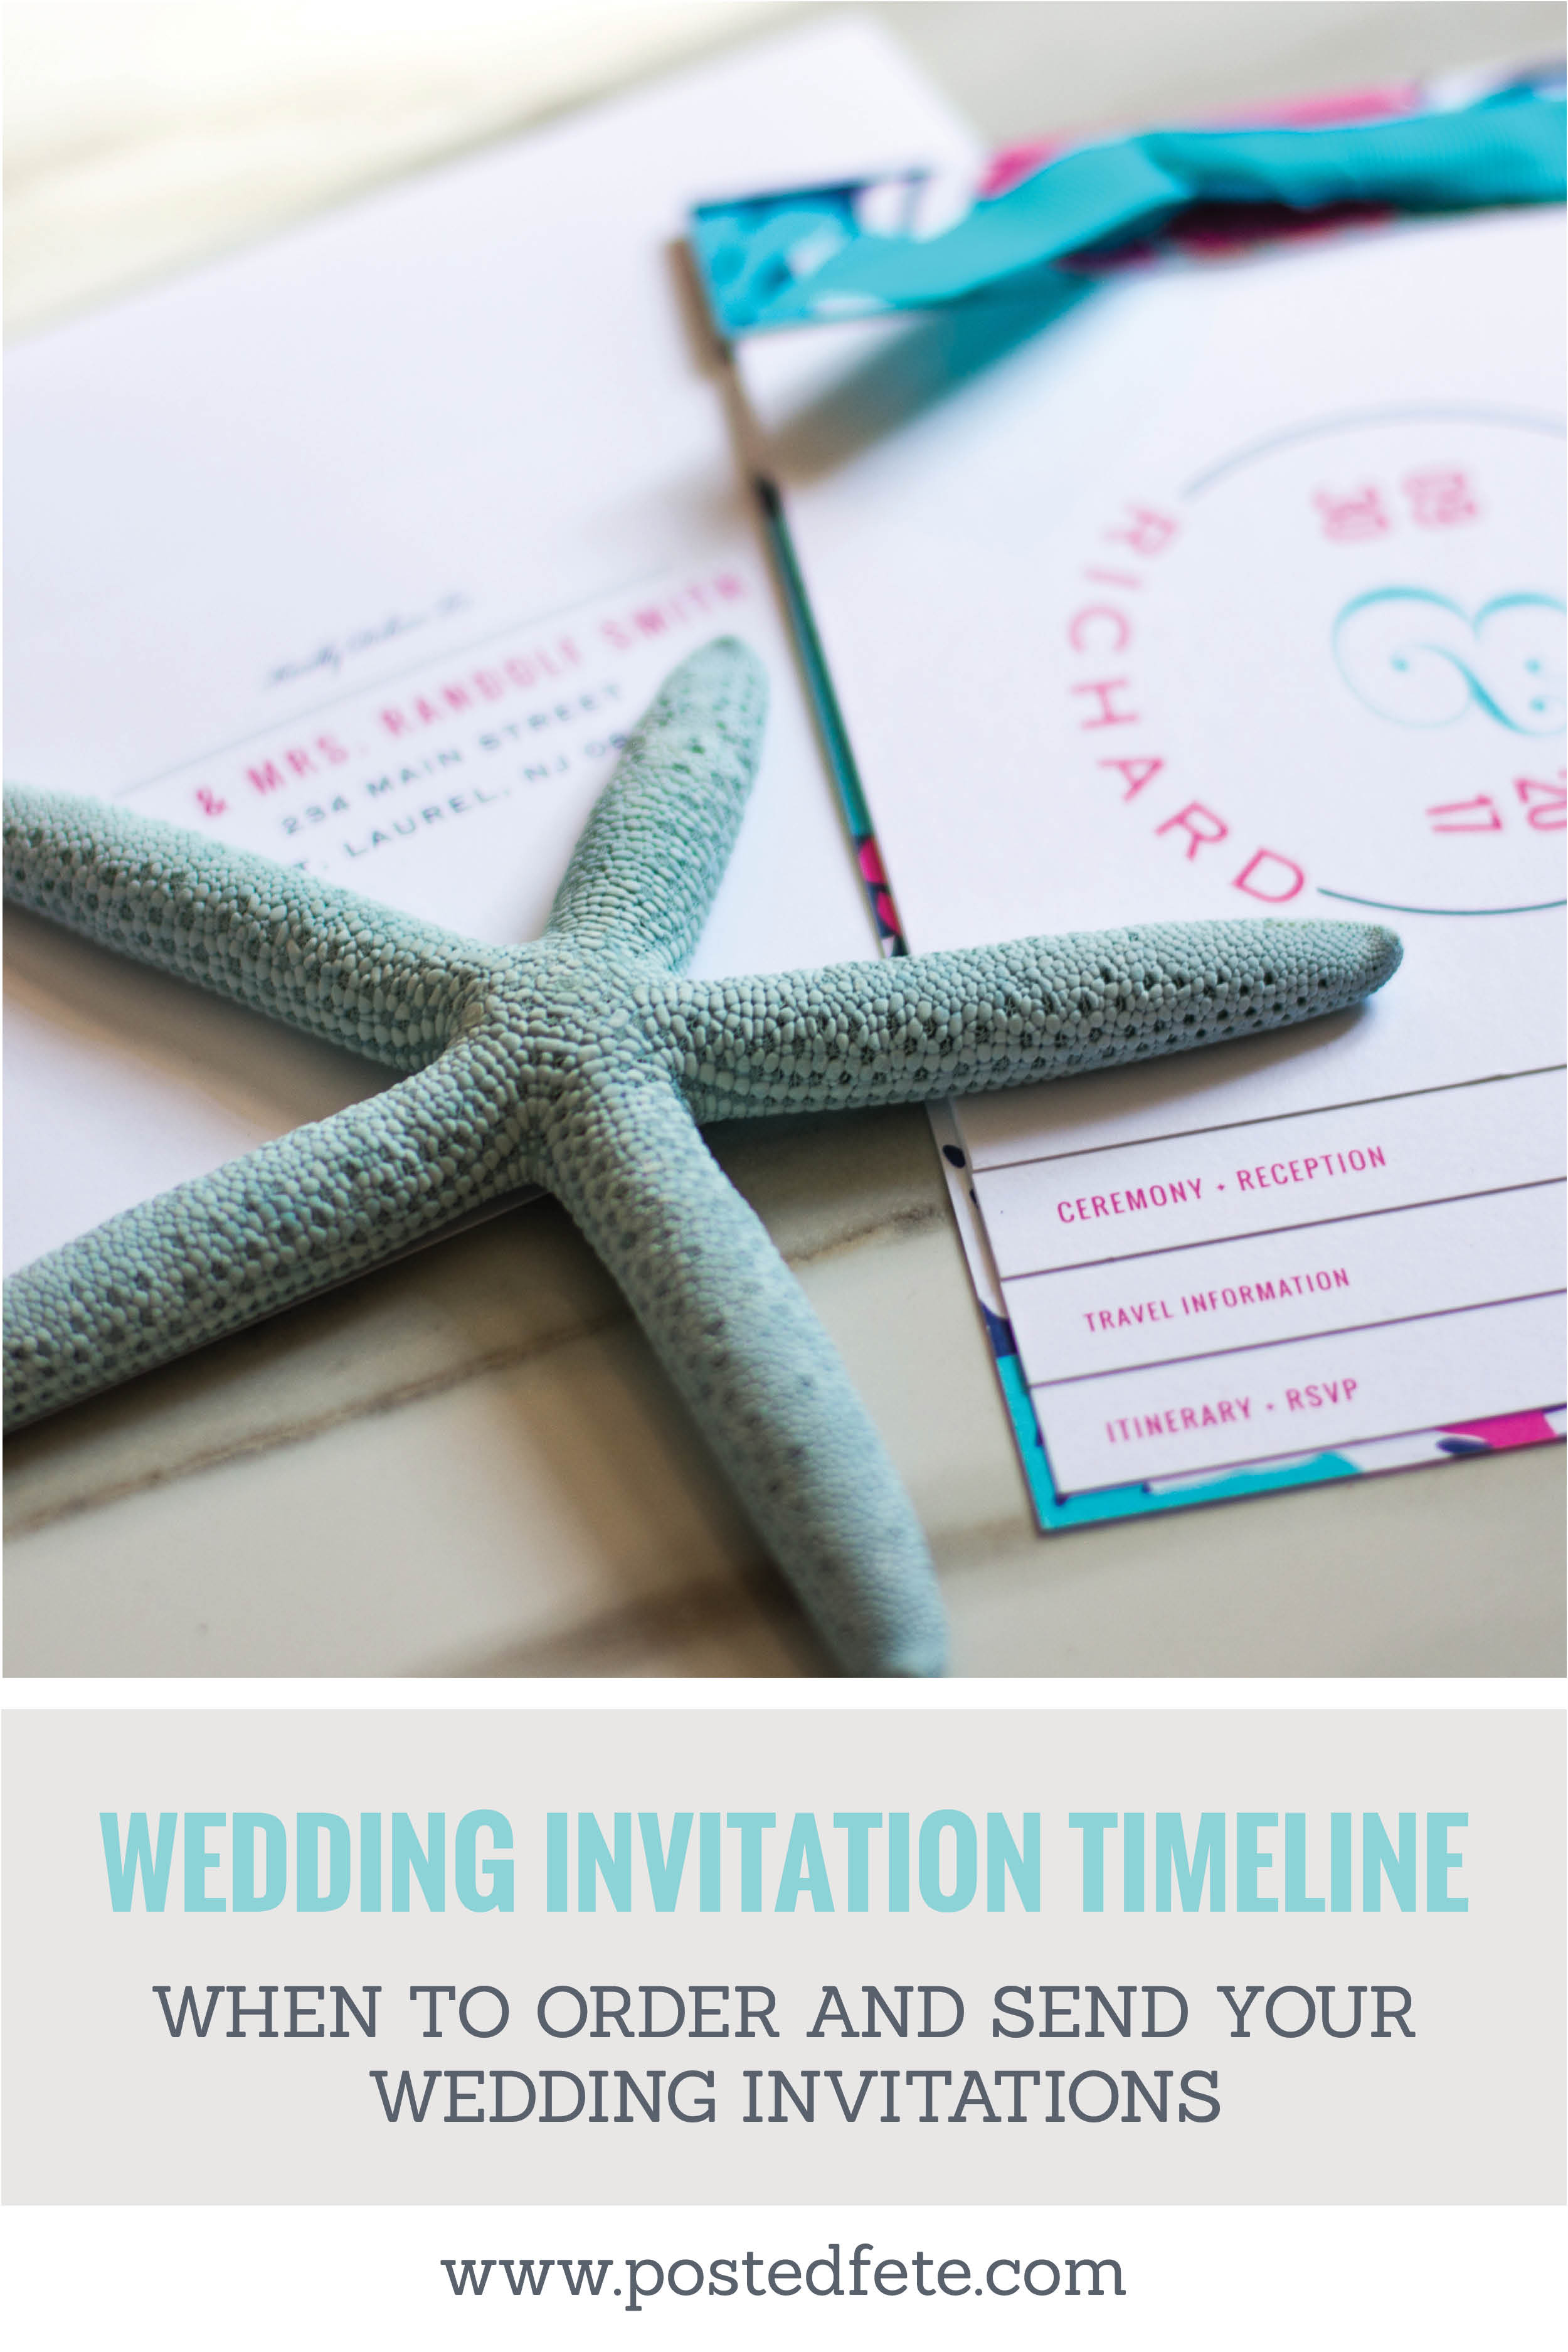 When to order wedding invitations and when to save wedding invitations for local and destination weddings #weddingplanning